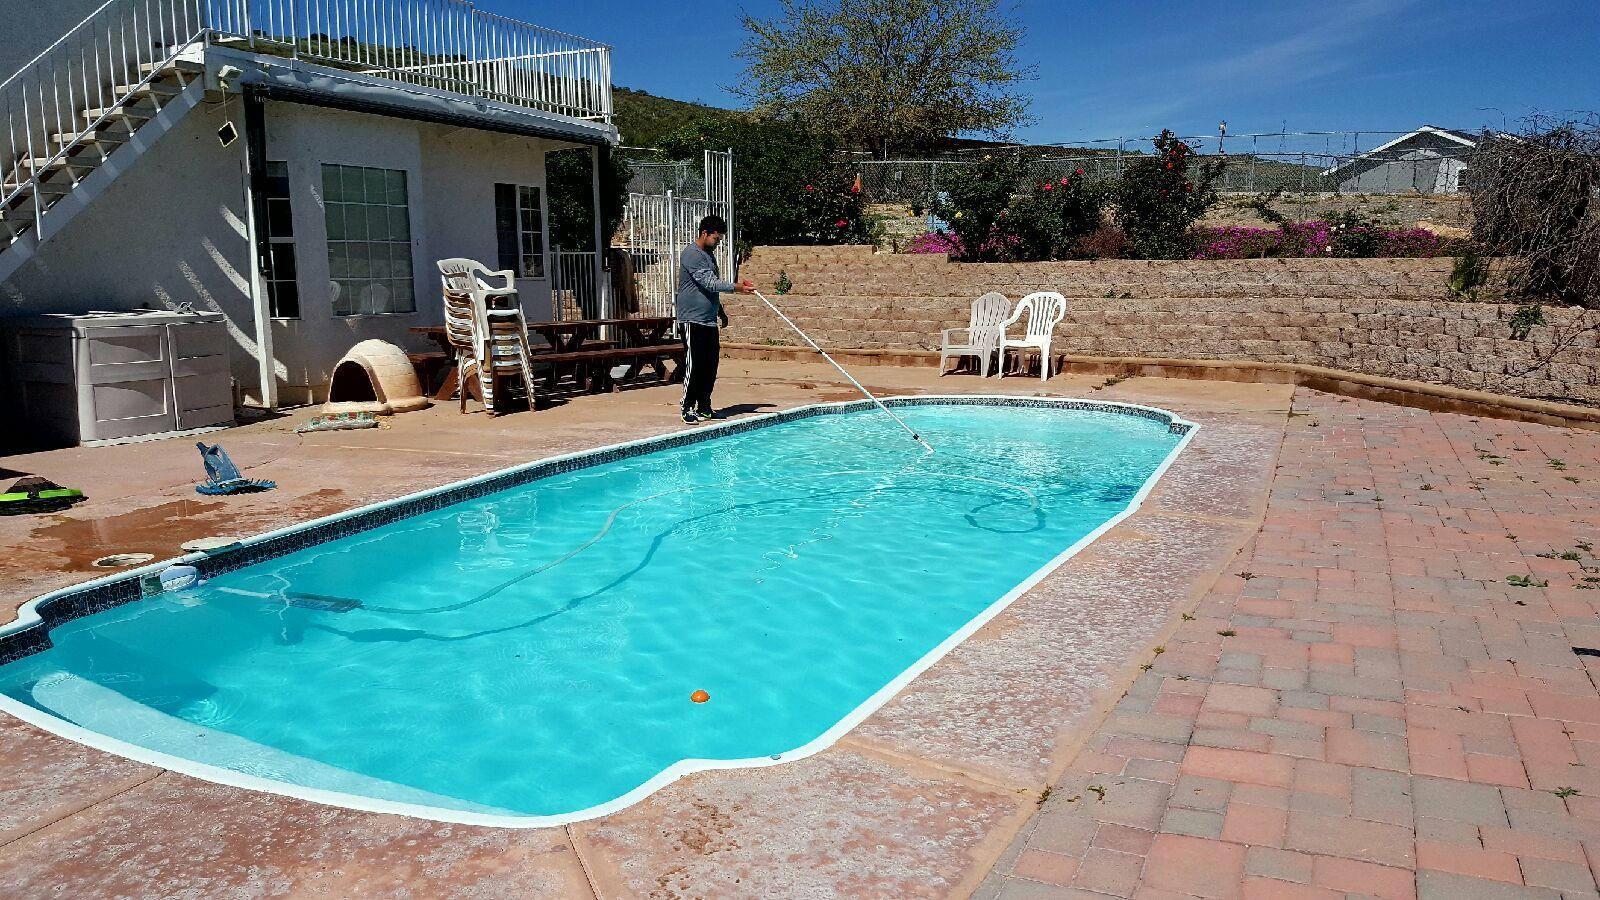 El Cajon Pool Services